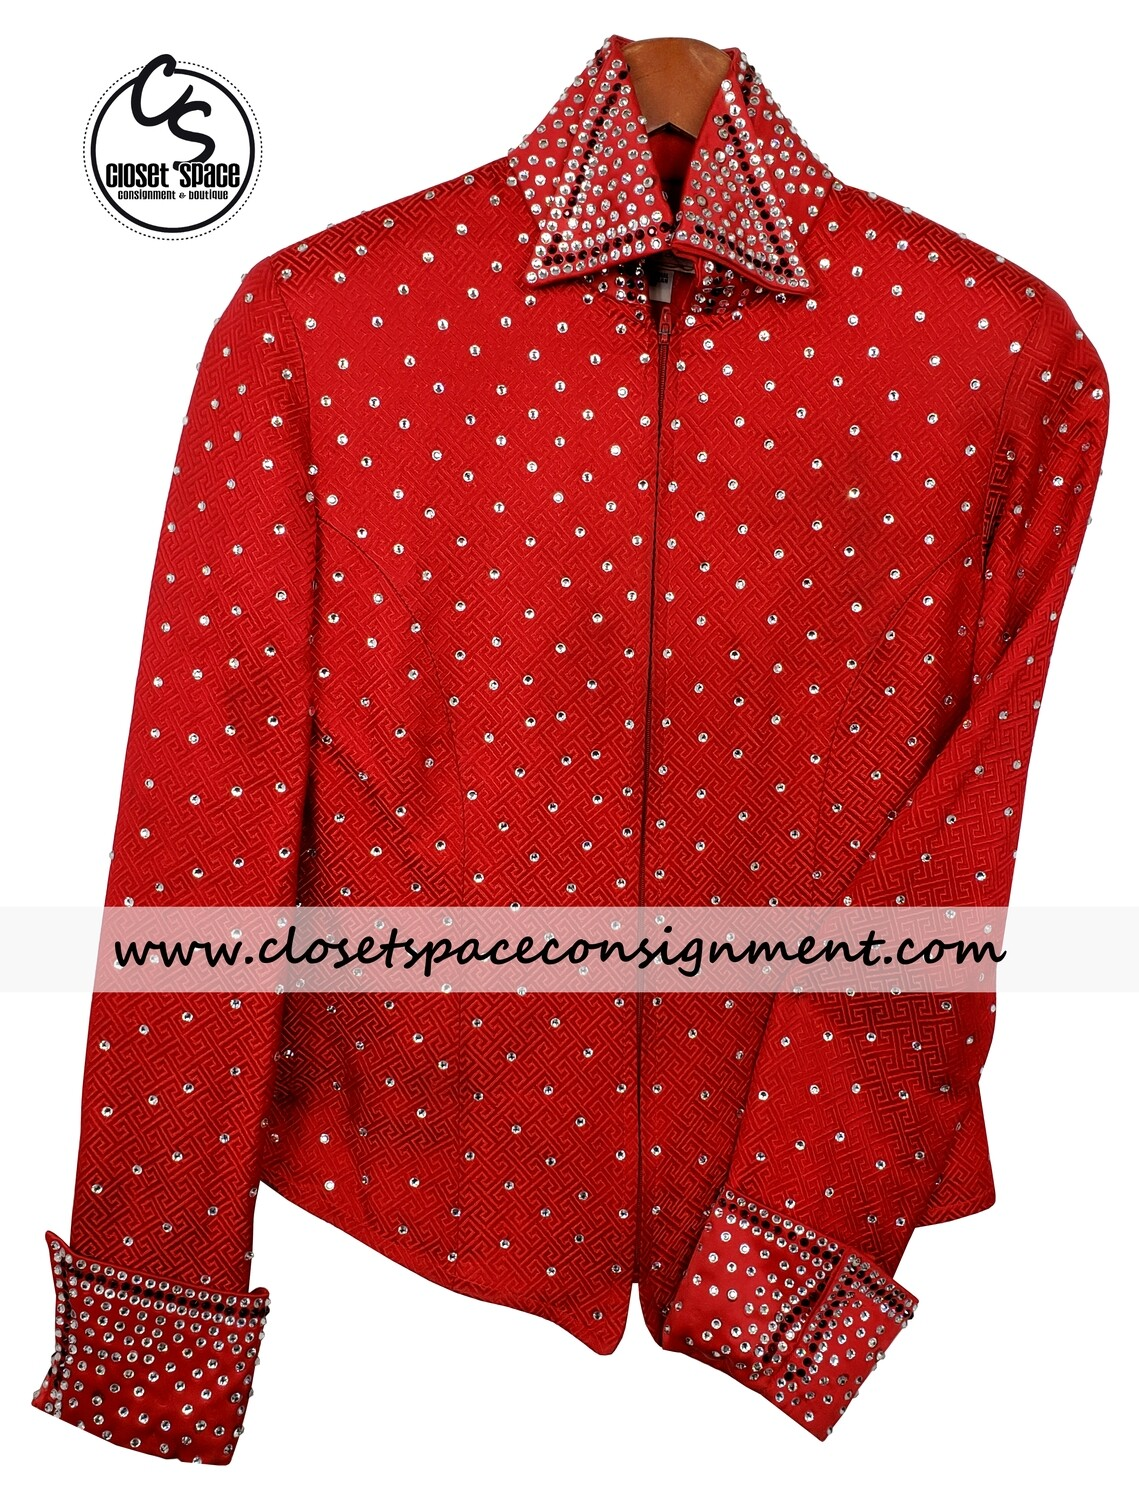 'Showing Fashions' Red Jacket